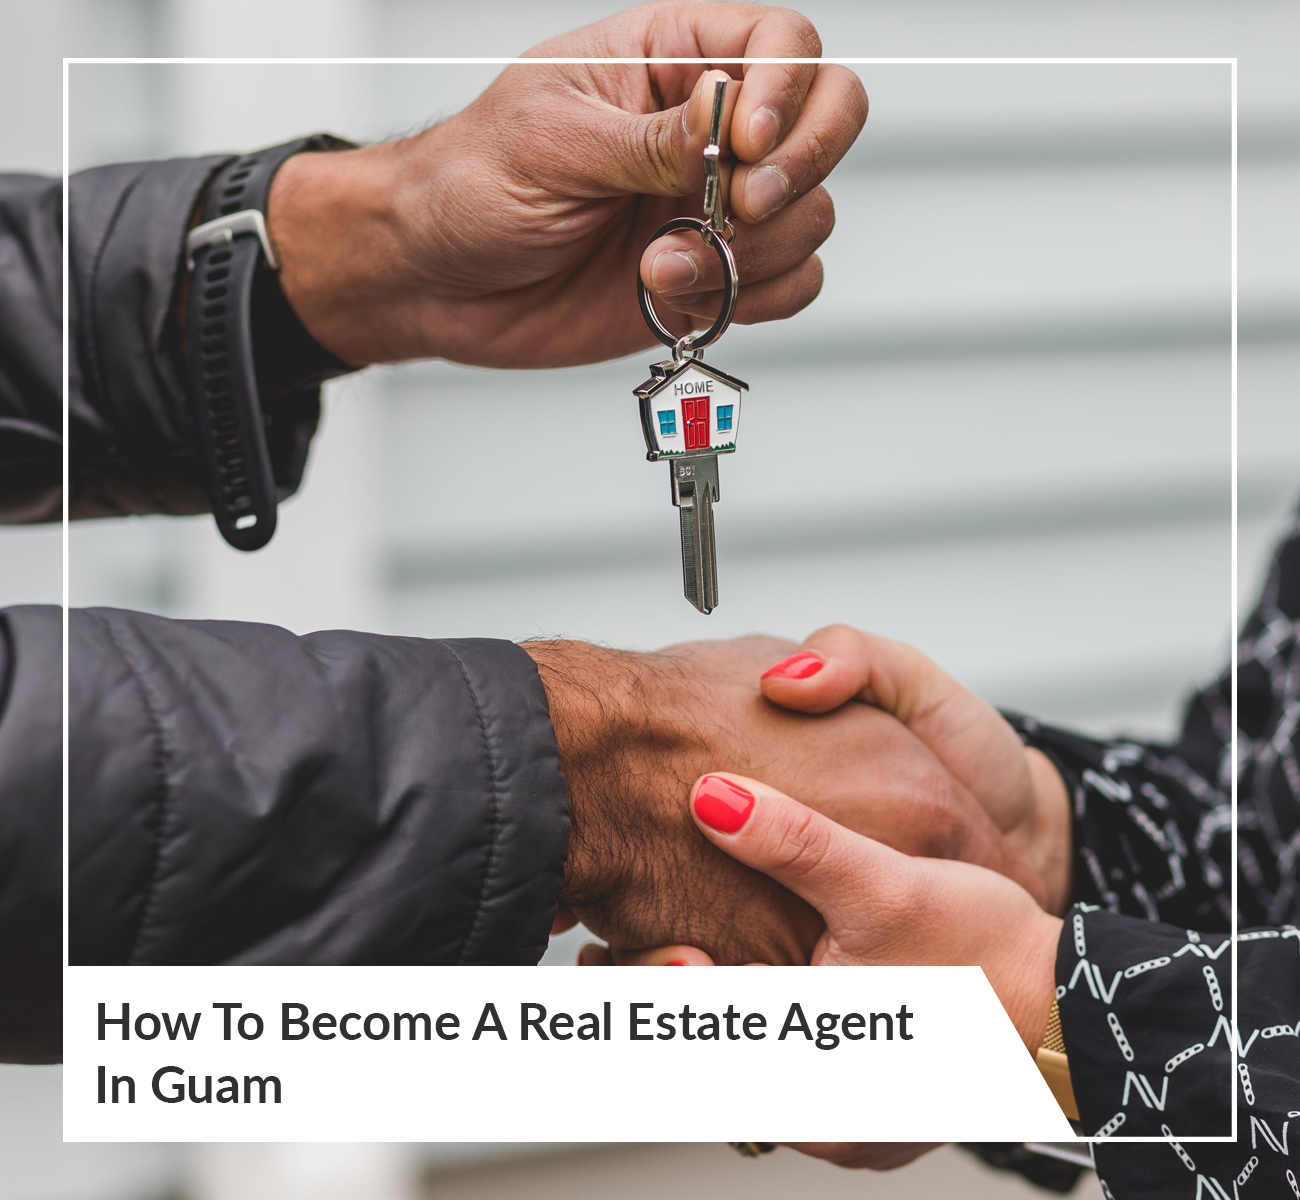 Become a Real Estate Agent in Guam